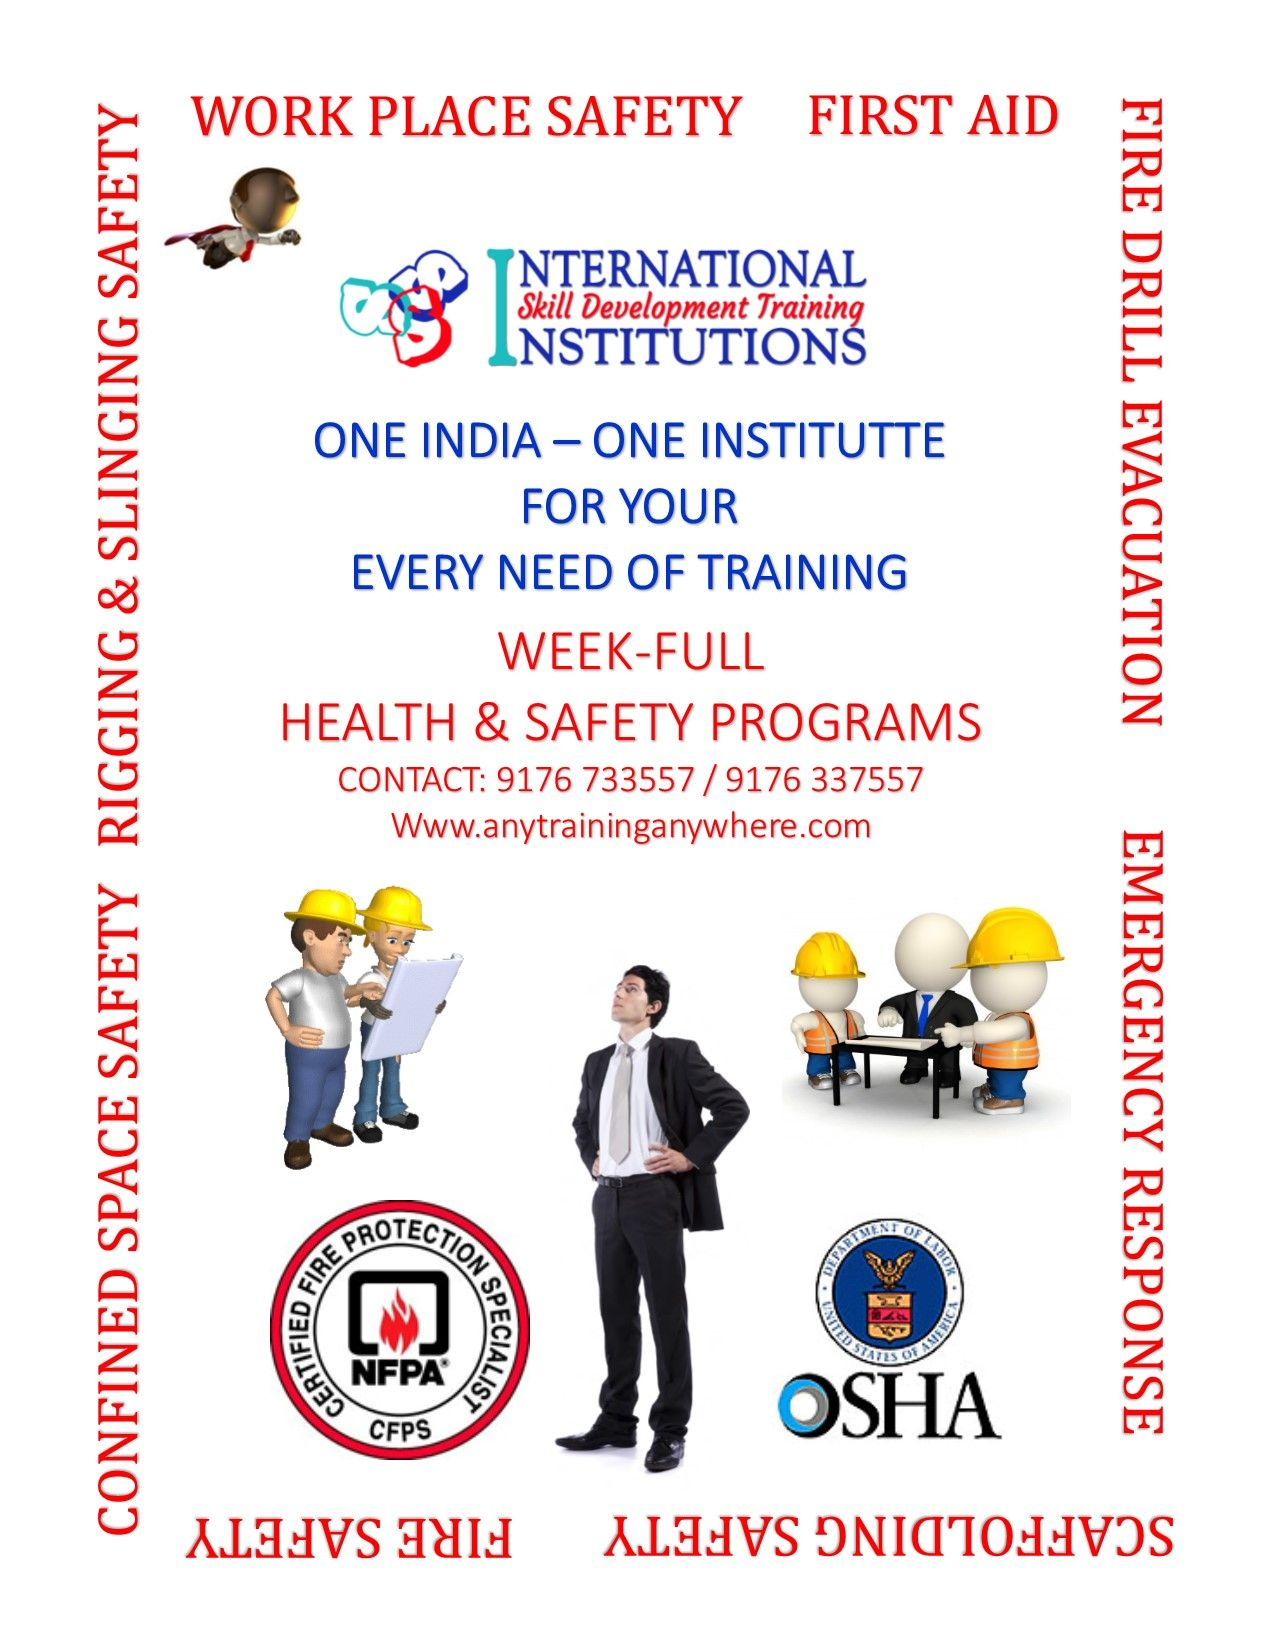 Nebosh iosh osha iirsm medicfirst nfpa nuco sthn ambulance hse john ambulance hse hseq health and safety environmental safety safety courses safety programs safety training safety institute safety center safety xflitez Gallery